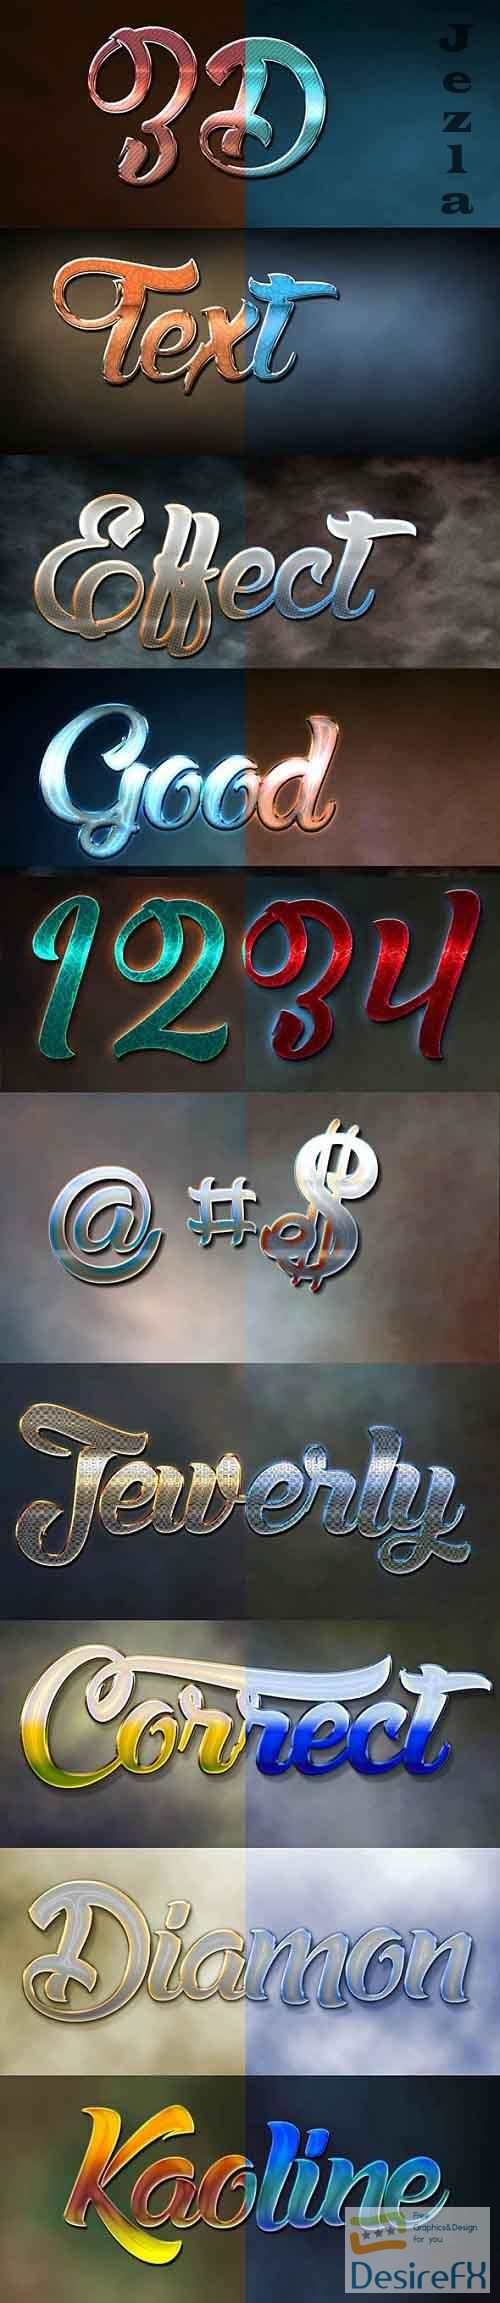 GraphicRiver - 10 3D Text Effect 29_09_20 28755387